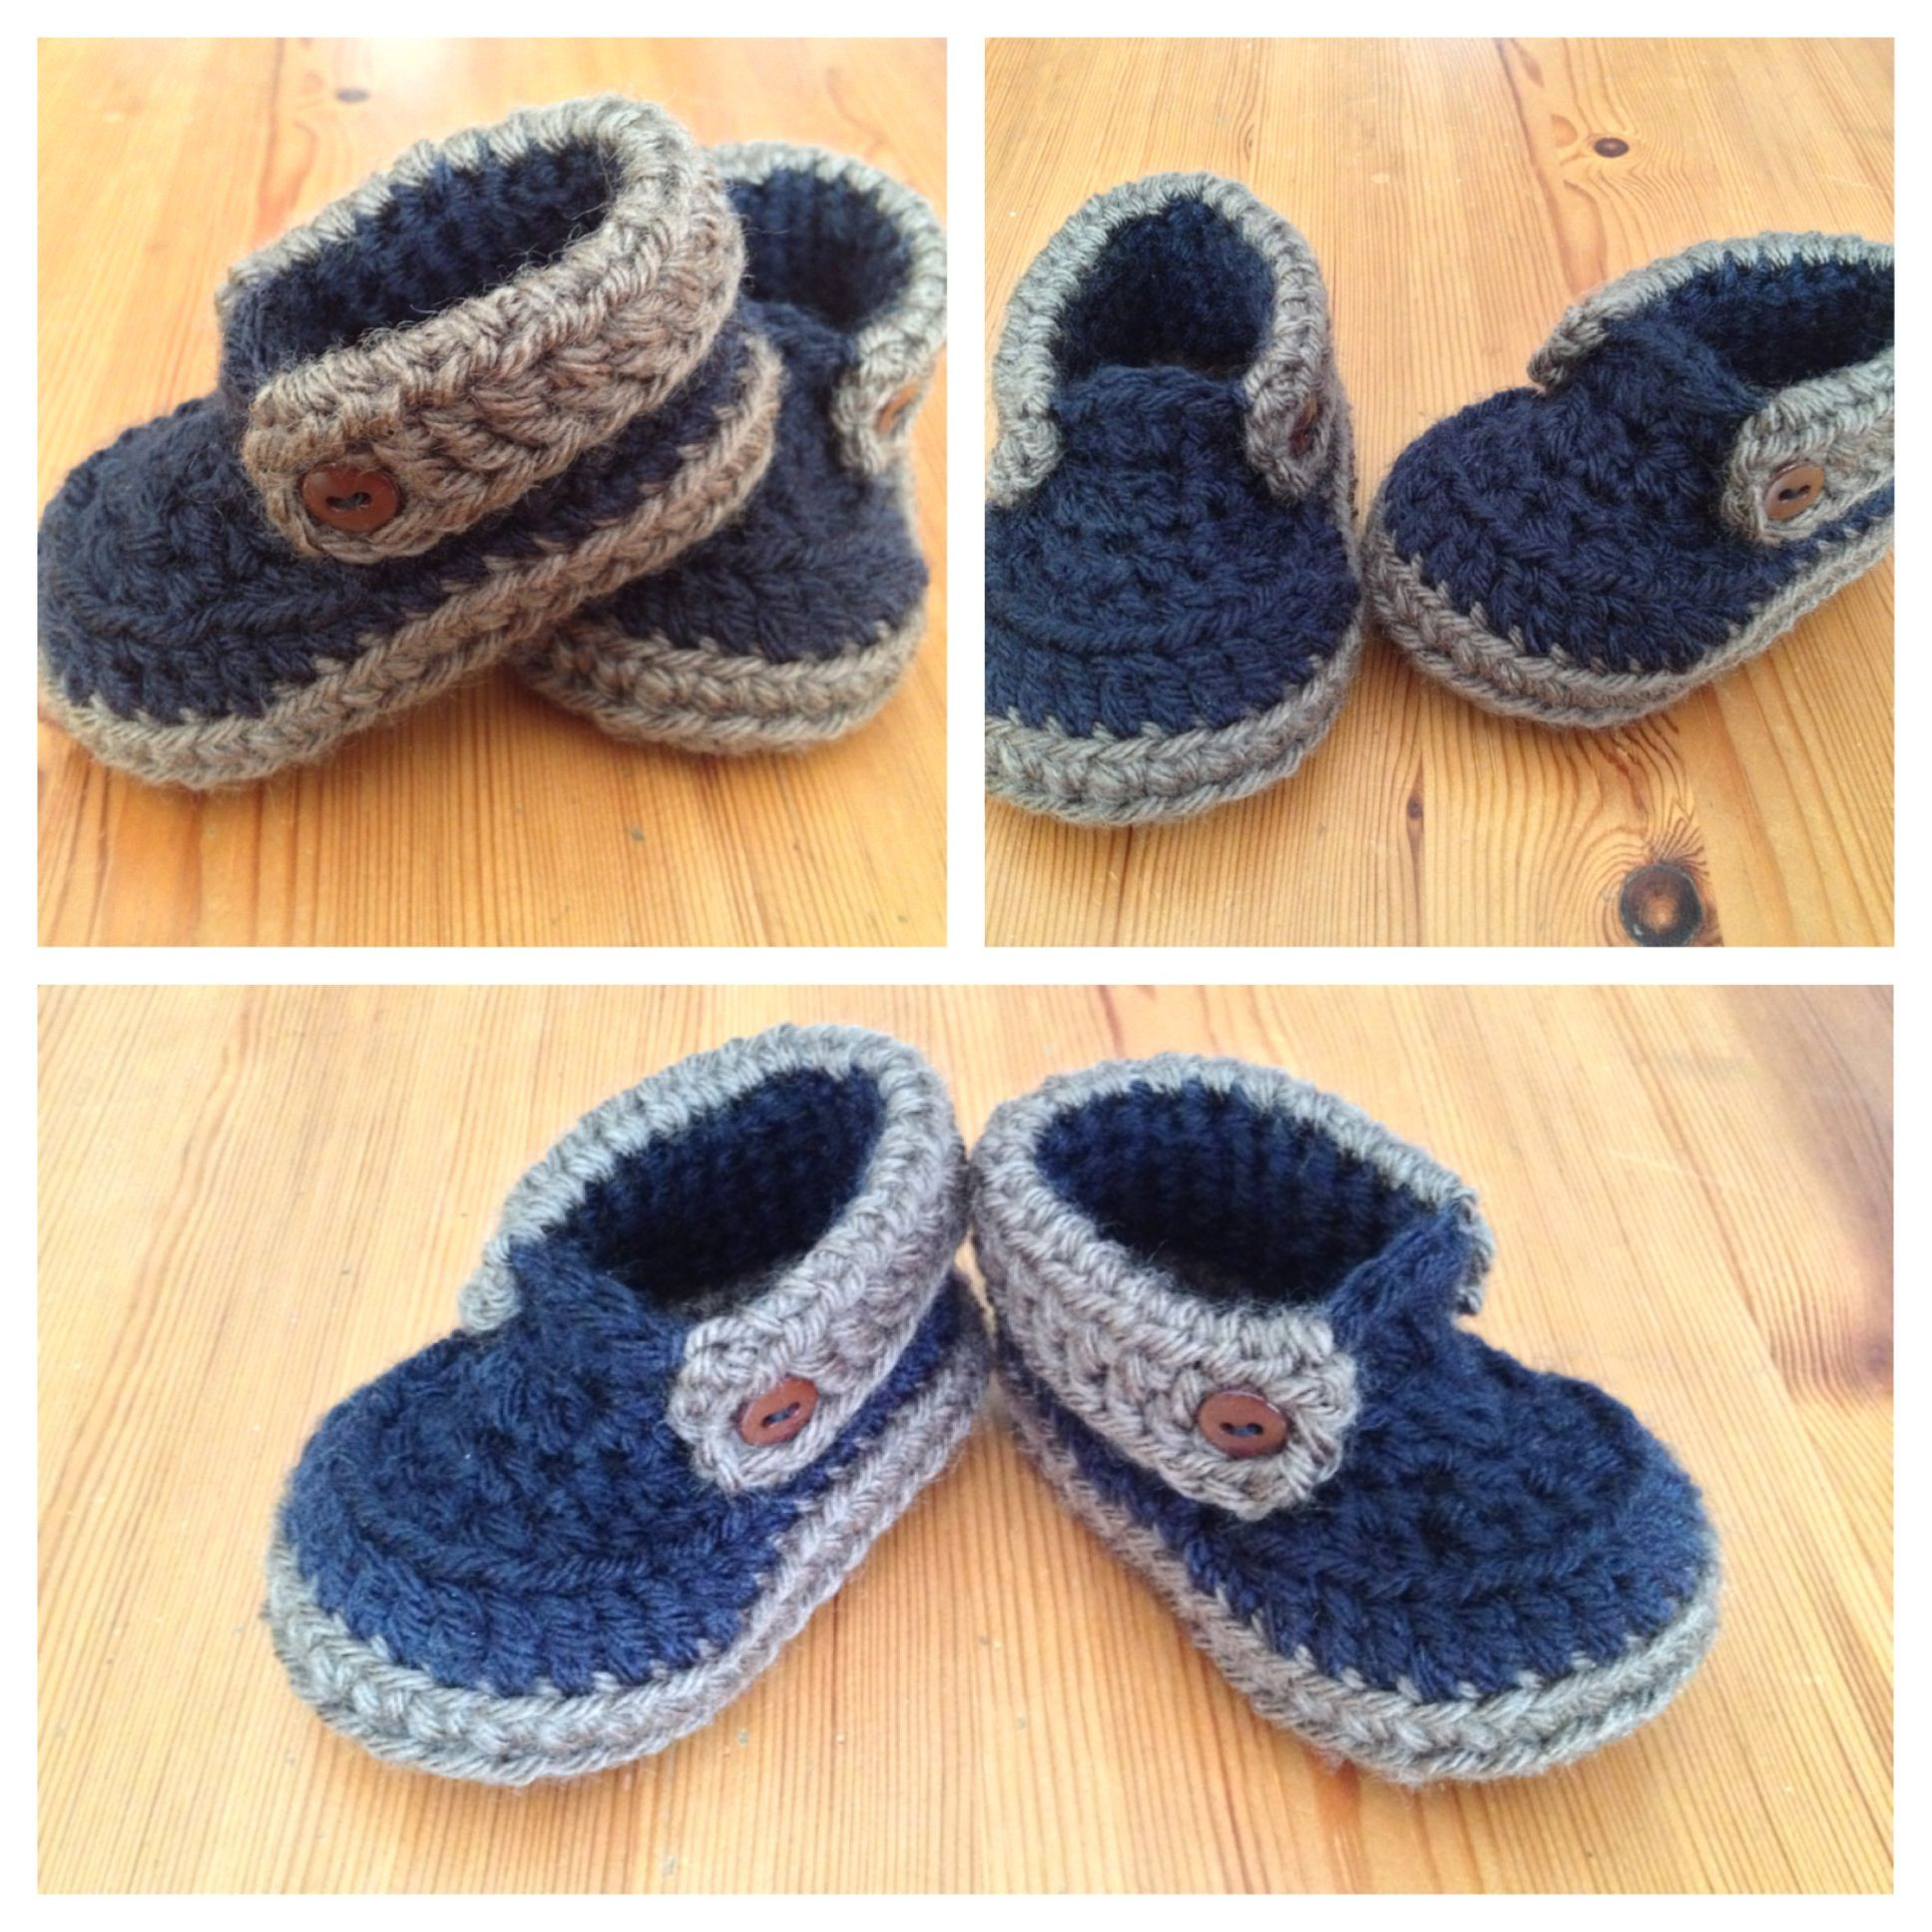 Unique the Gallery for Baby Boy Crochet Booties Crochet Baby Boy Booties Of Luxury 45 Models Crochet Baby Boy Booties